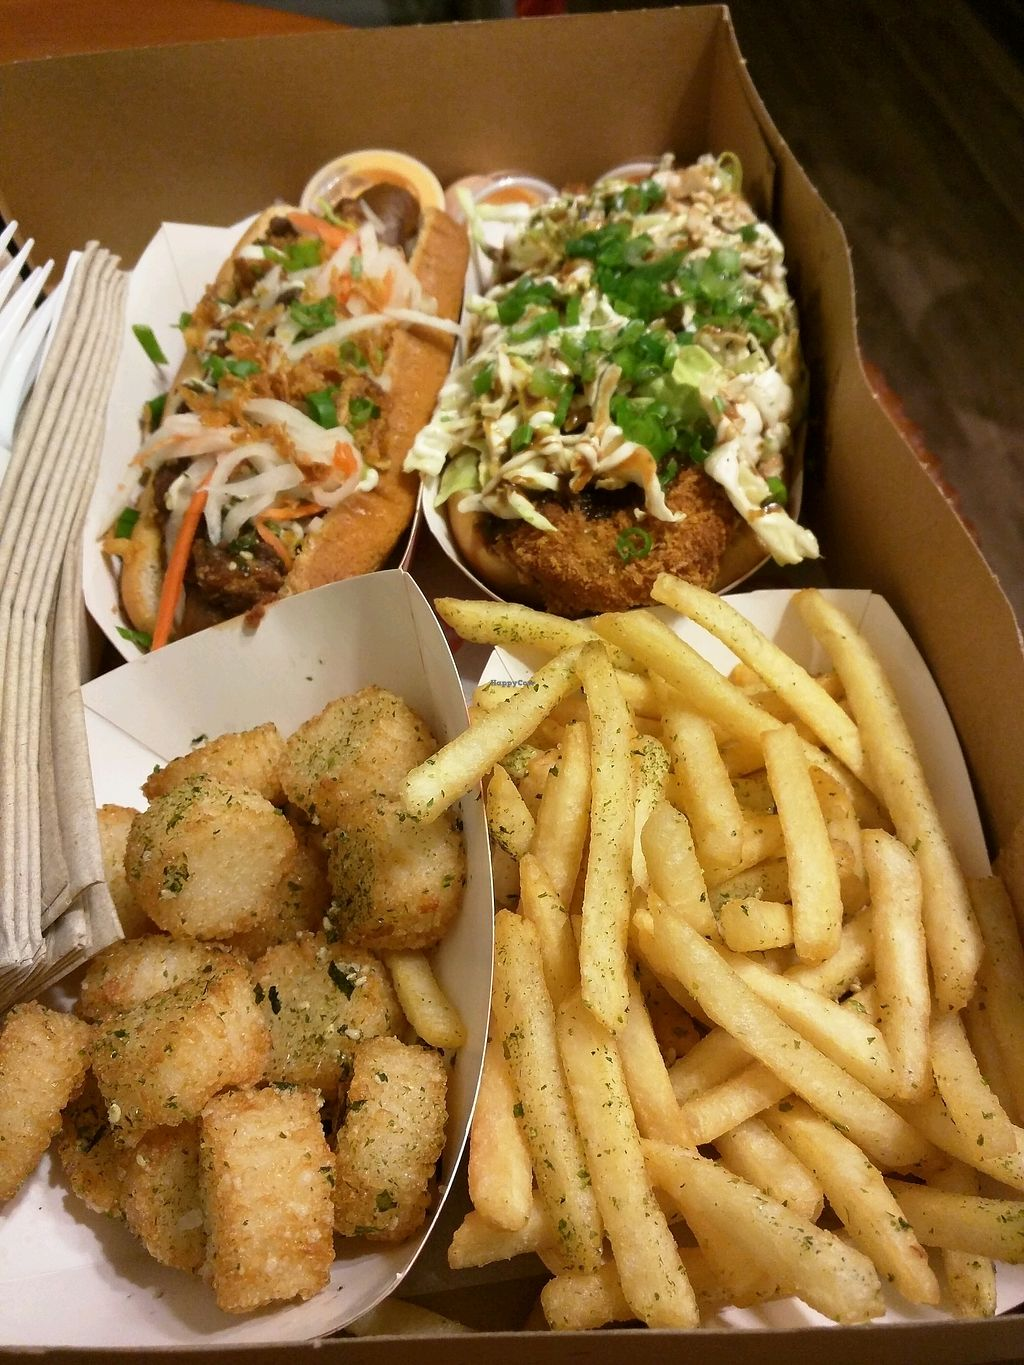 "Photo of Sumo Dog  by <a href=""/members/profile/philjdomm"">philjdomm</a> <br/>Vegan Katsu and Spicy Tofu Hot Dog <br/> December 20, 2017  - <a href='/contact/abuse/image/107657/337624'>Report</a>"